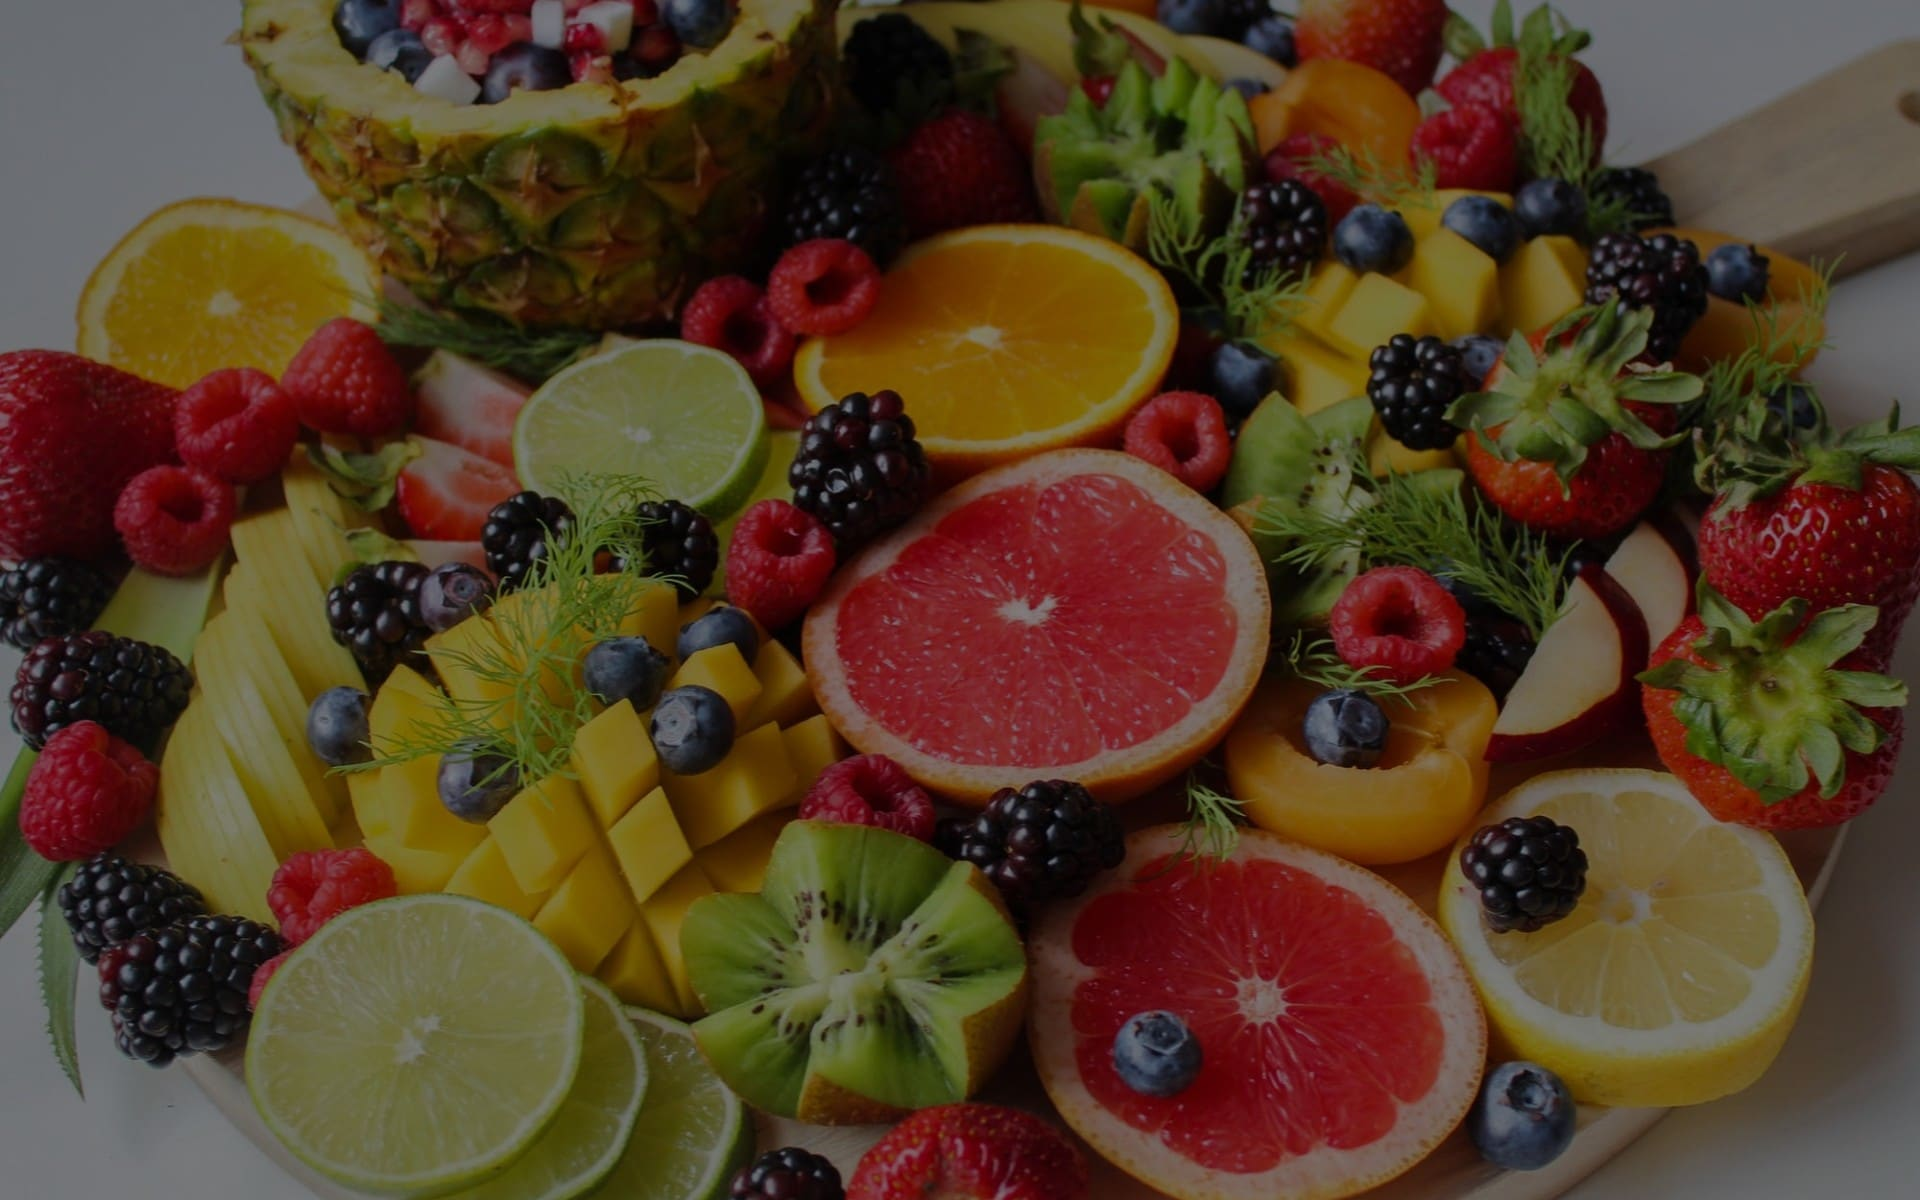 We Only Cut Prices So There Are Plenty Of Fruity Features To Choose From